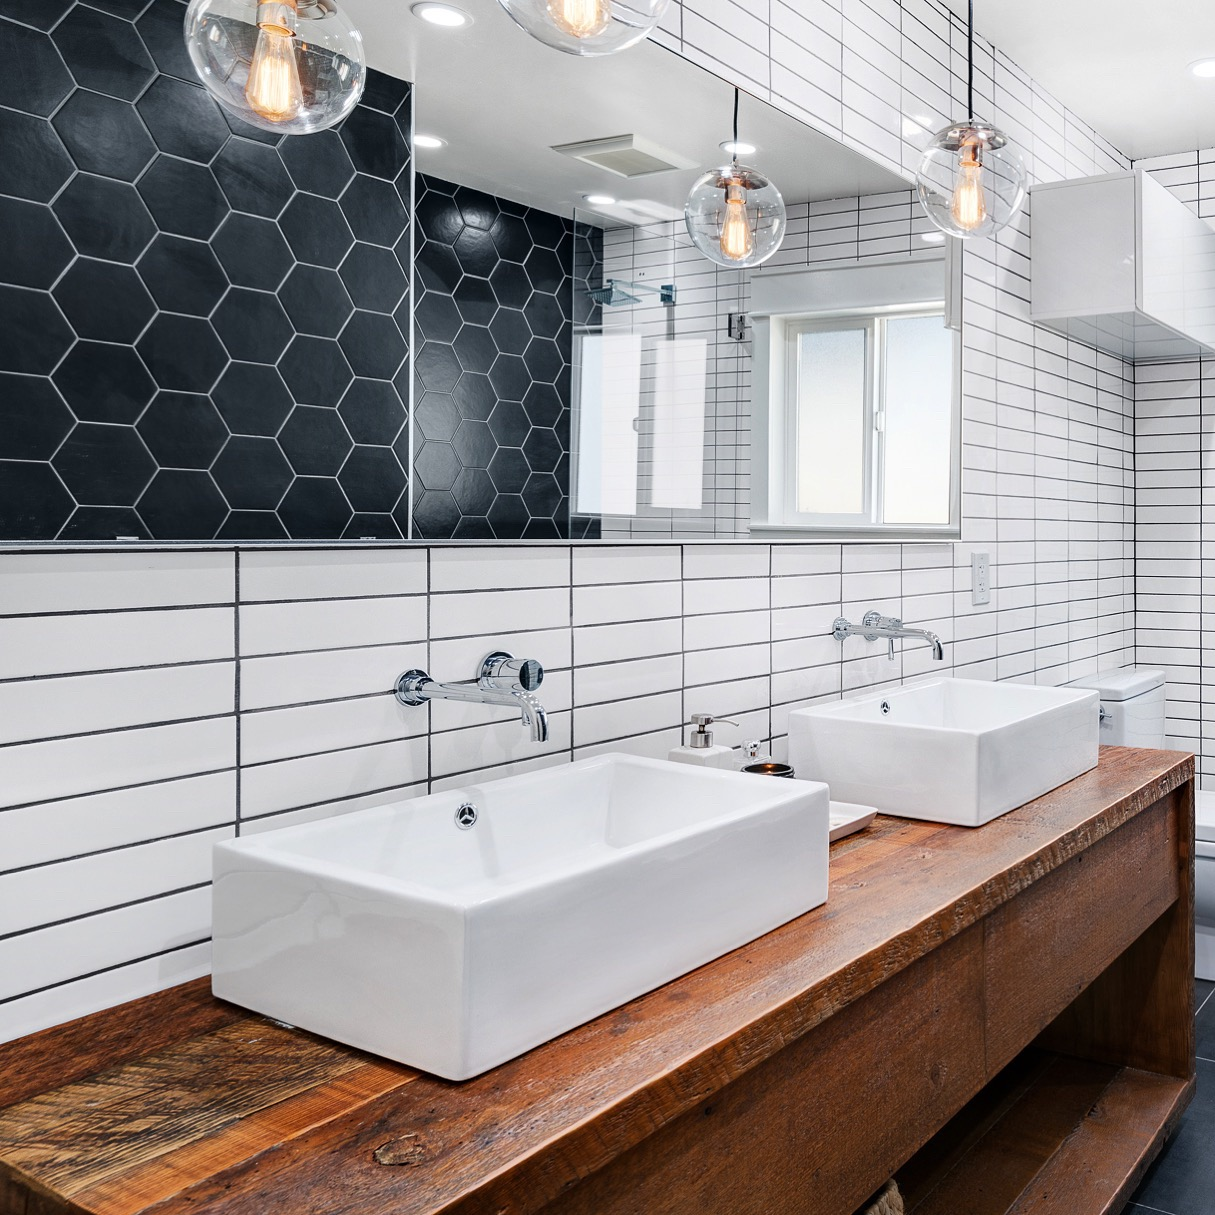 The most beautiful ways to have tiles in the bathroom